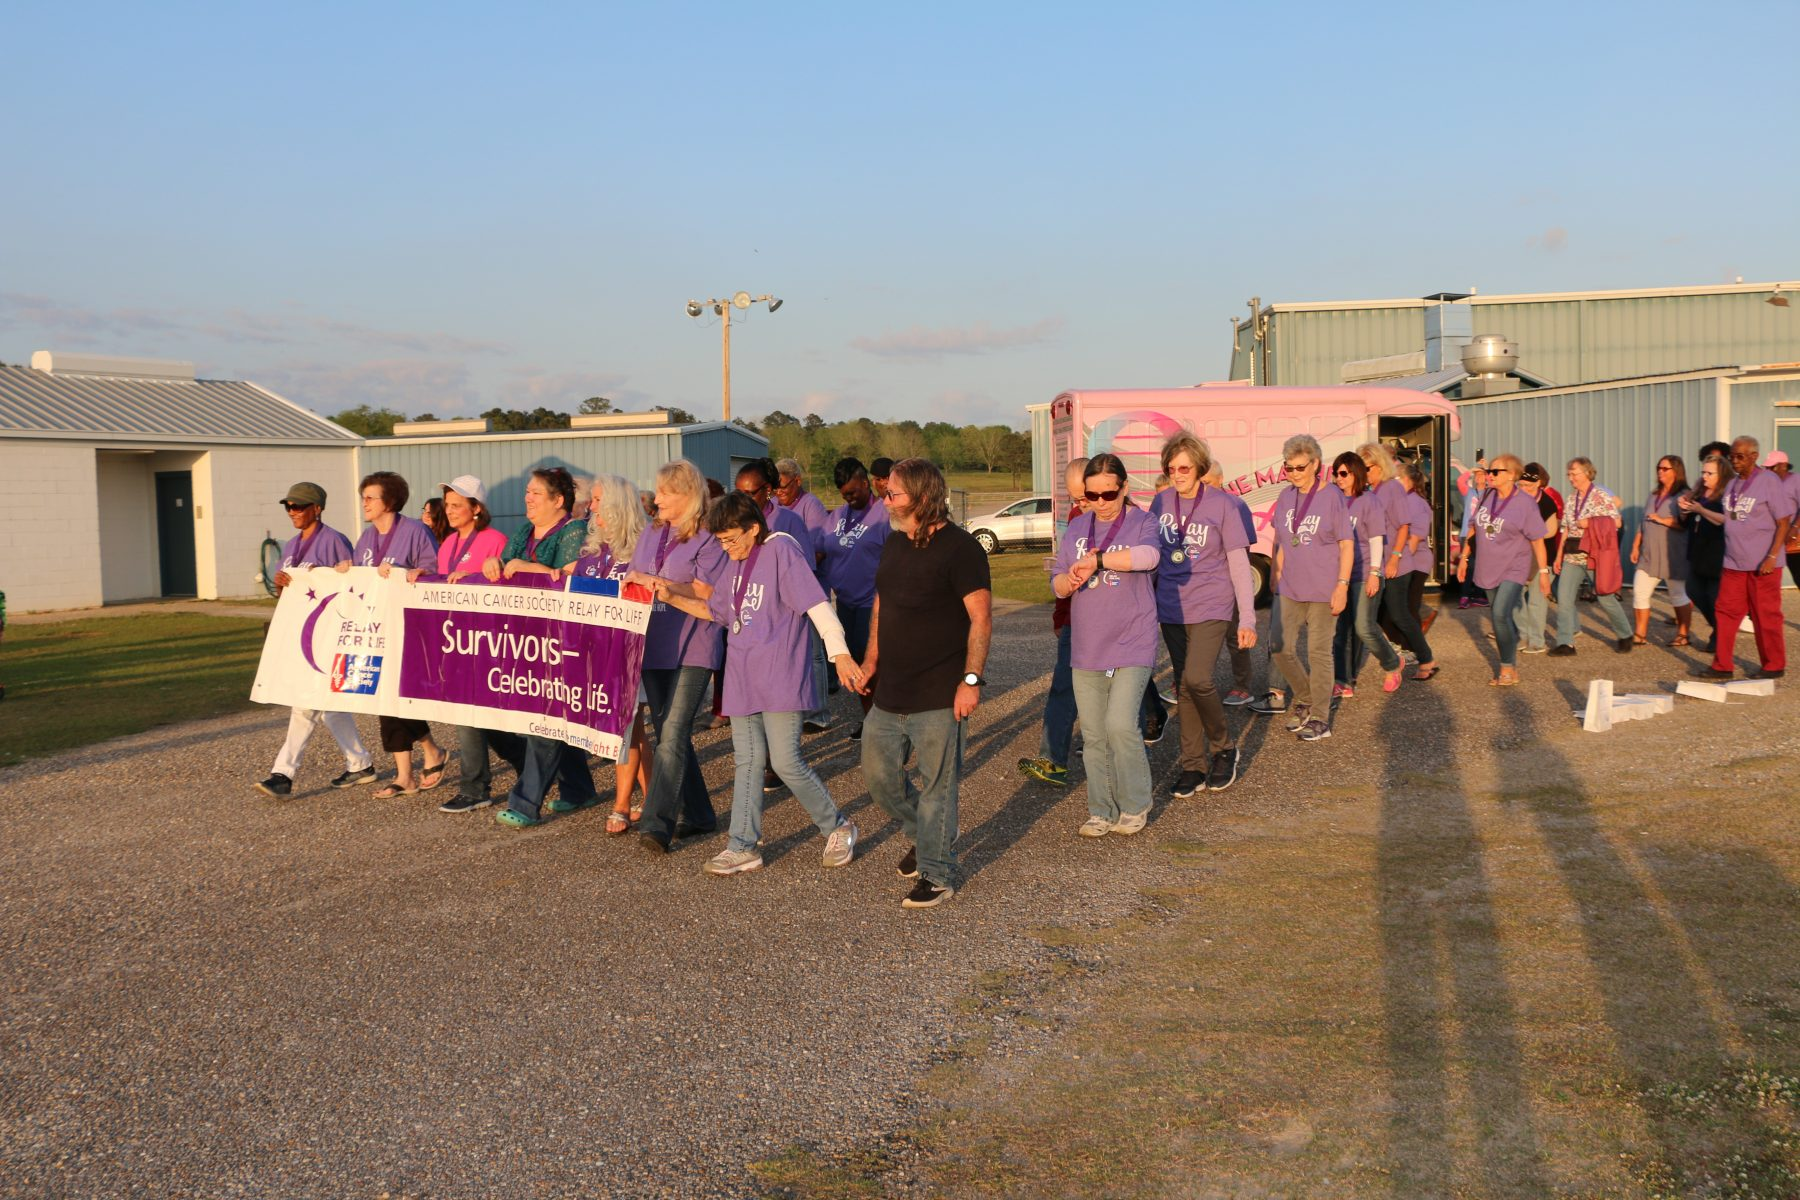 Relay For Life survivors group walking